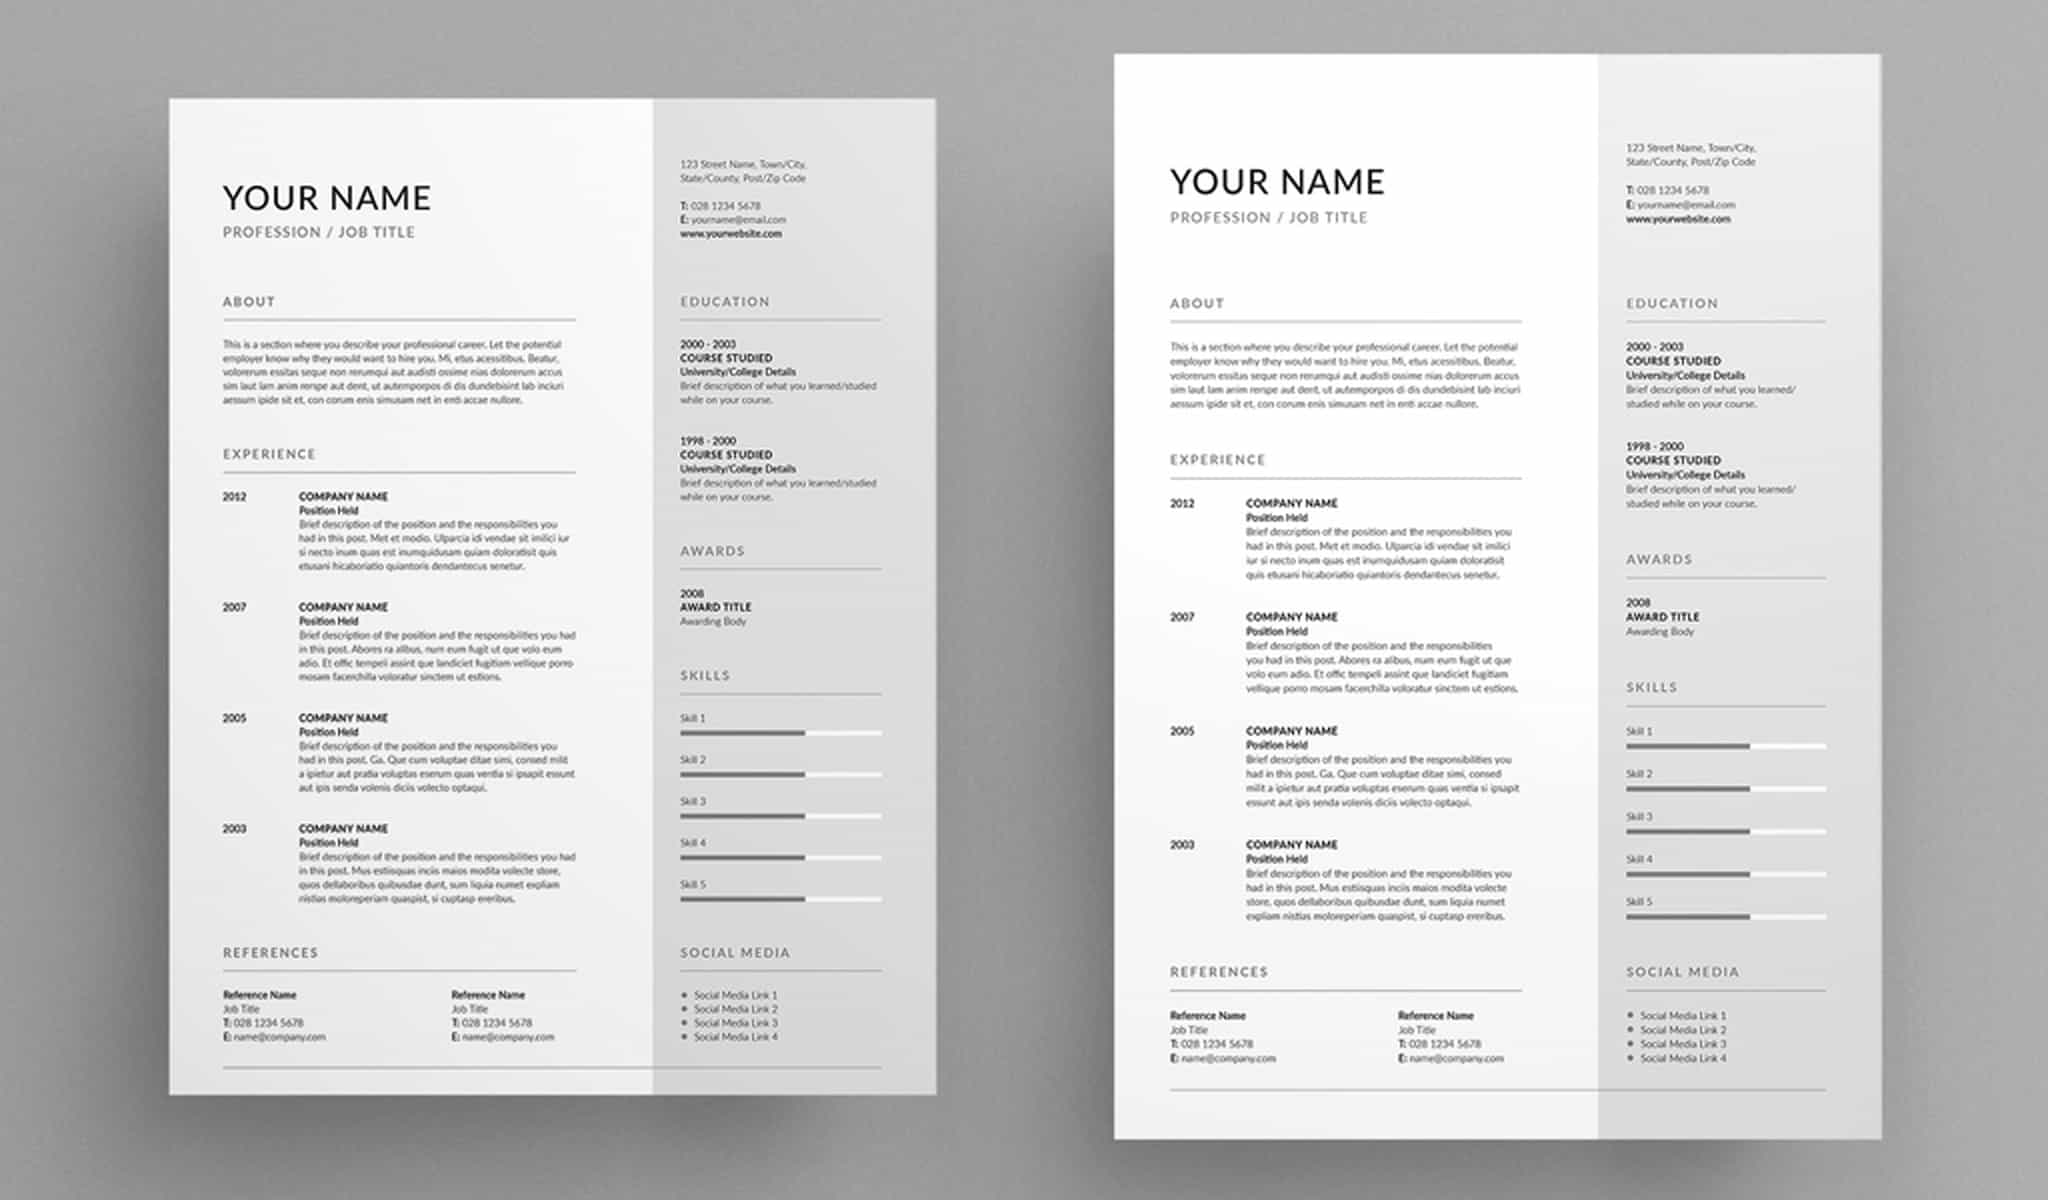 The Clean Resume